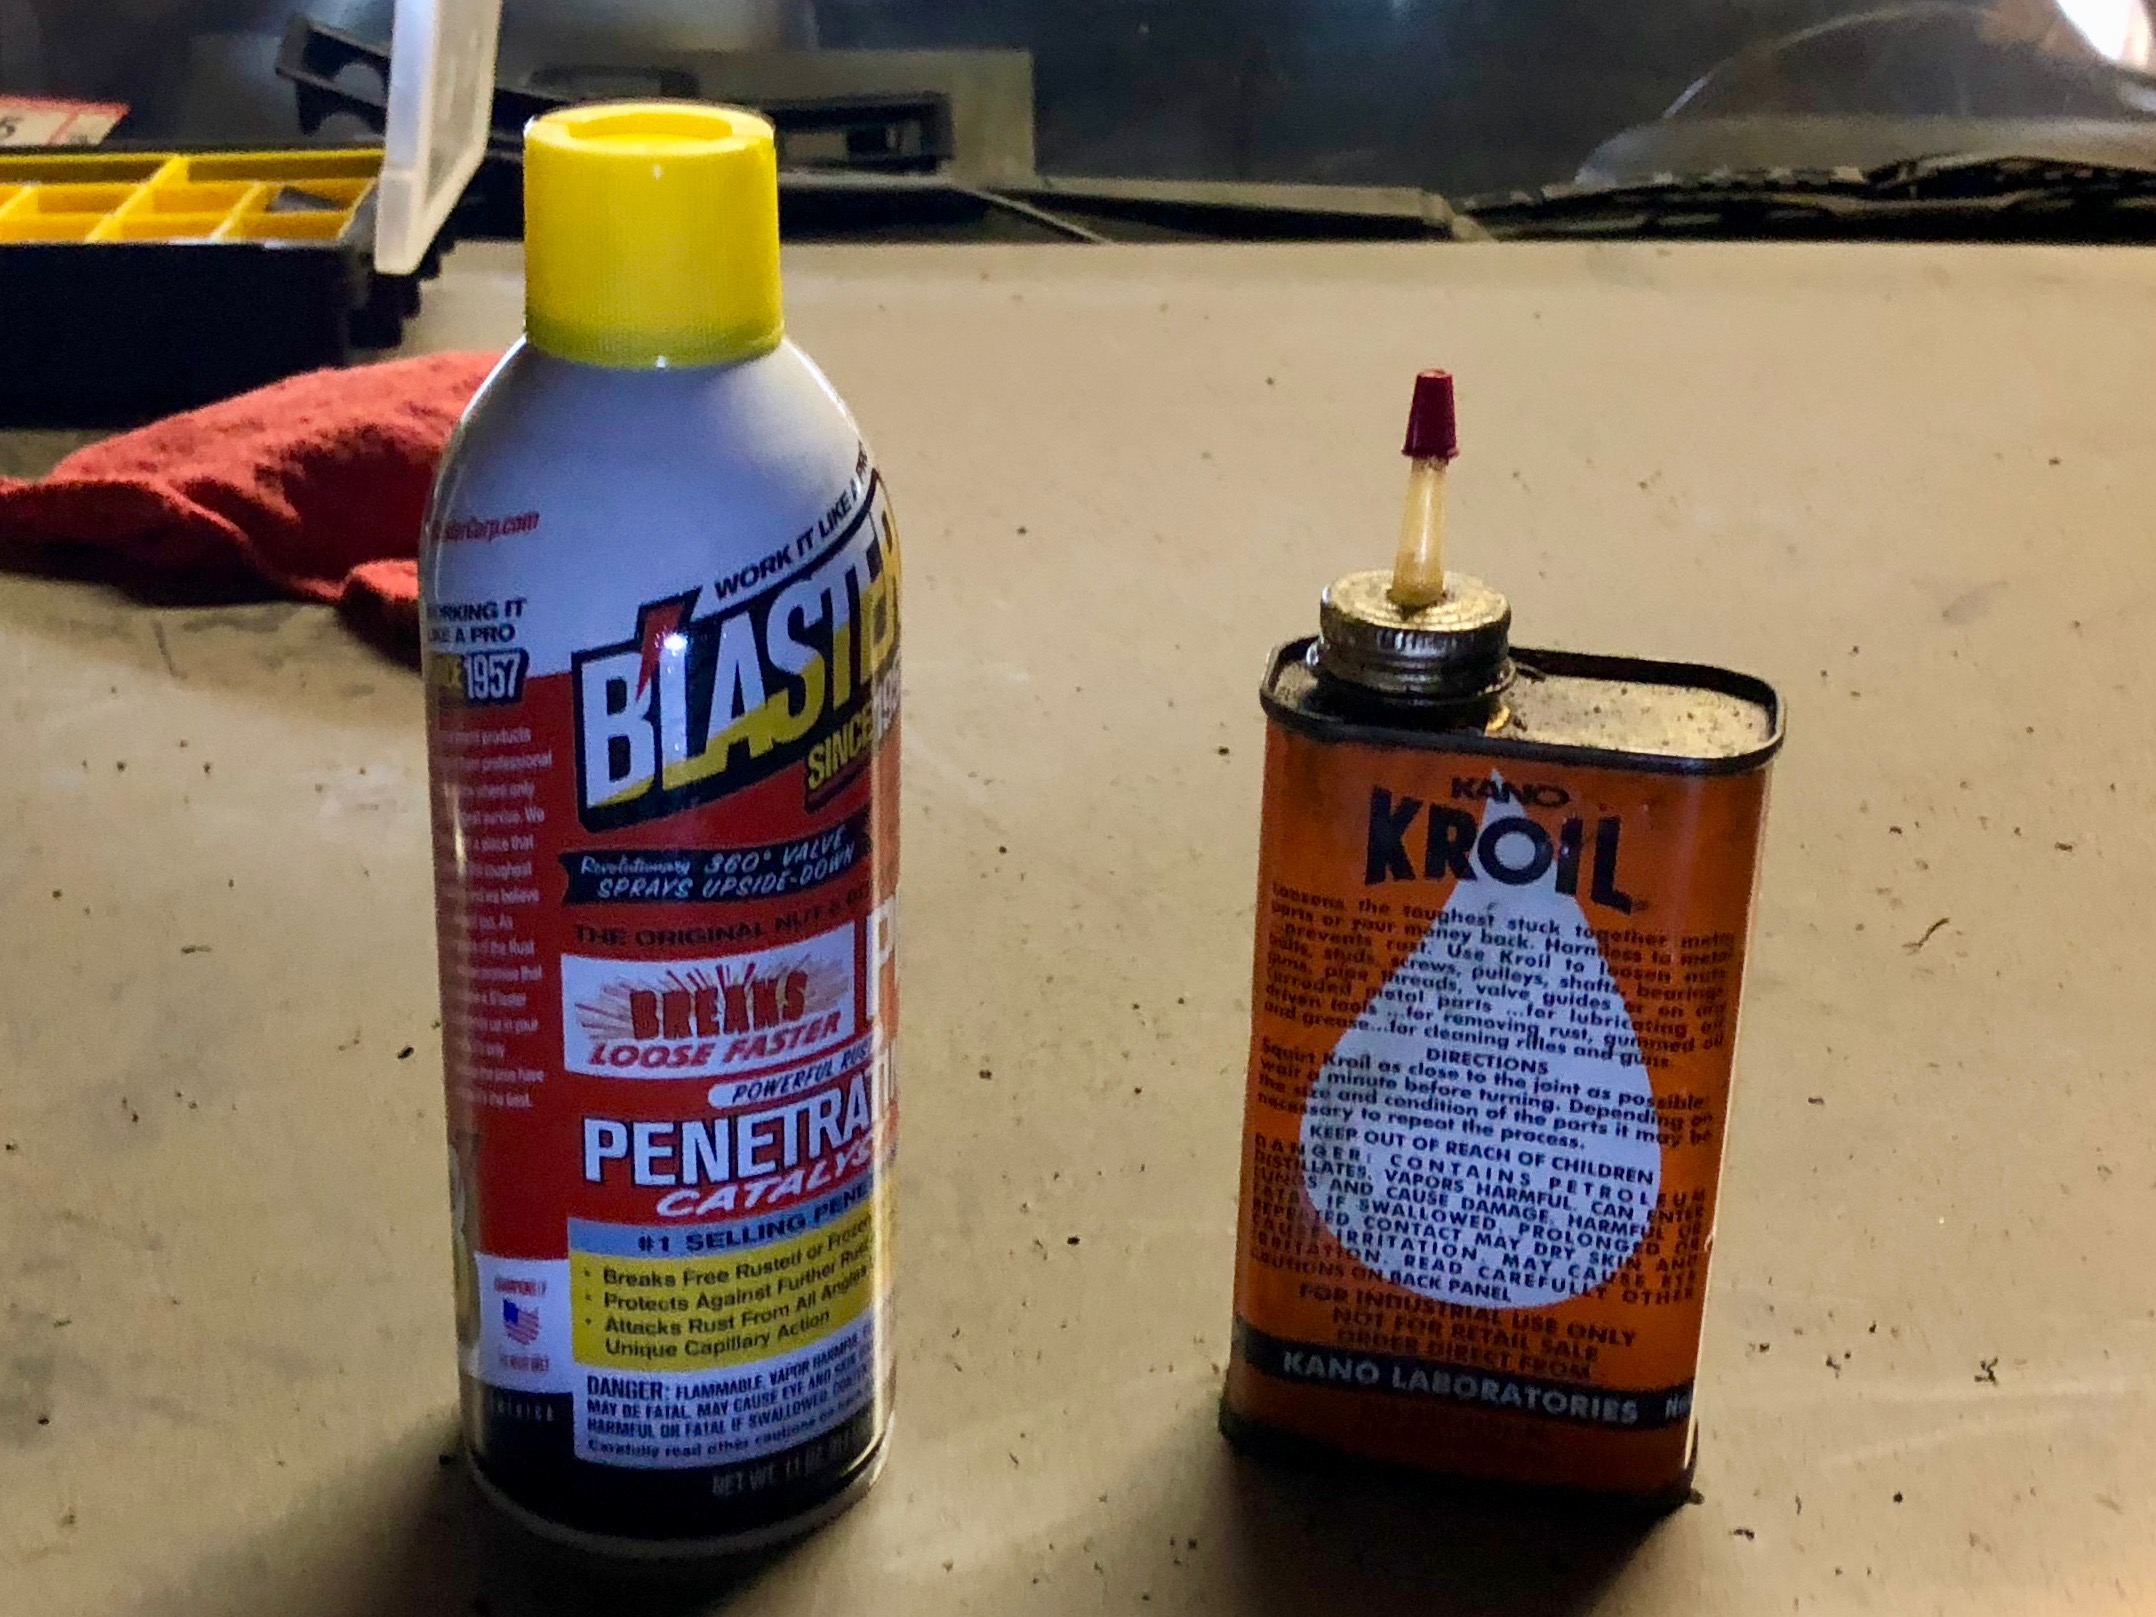 PB Blaster and Kroil, which I used to help break the corrosion on the hose ends.